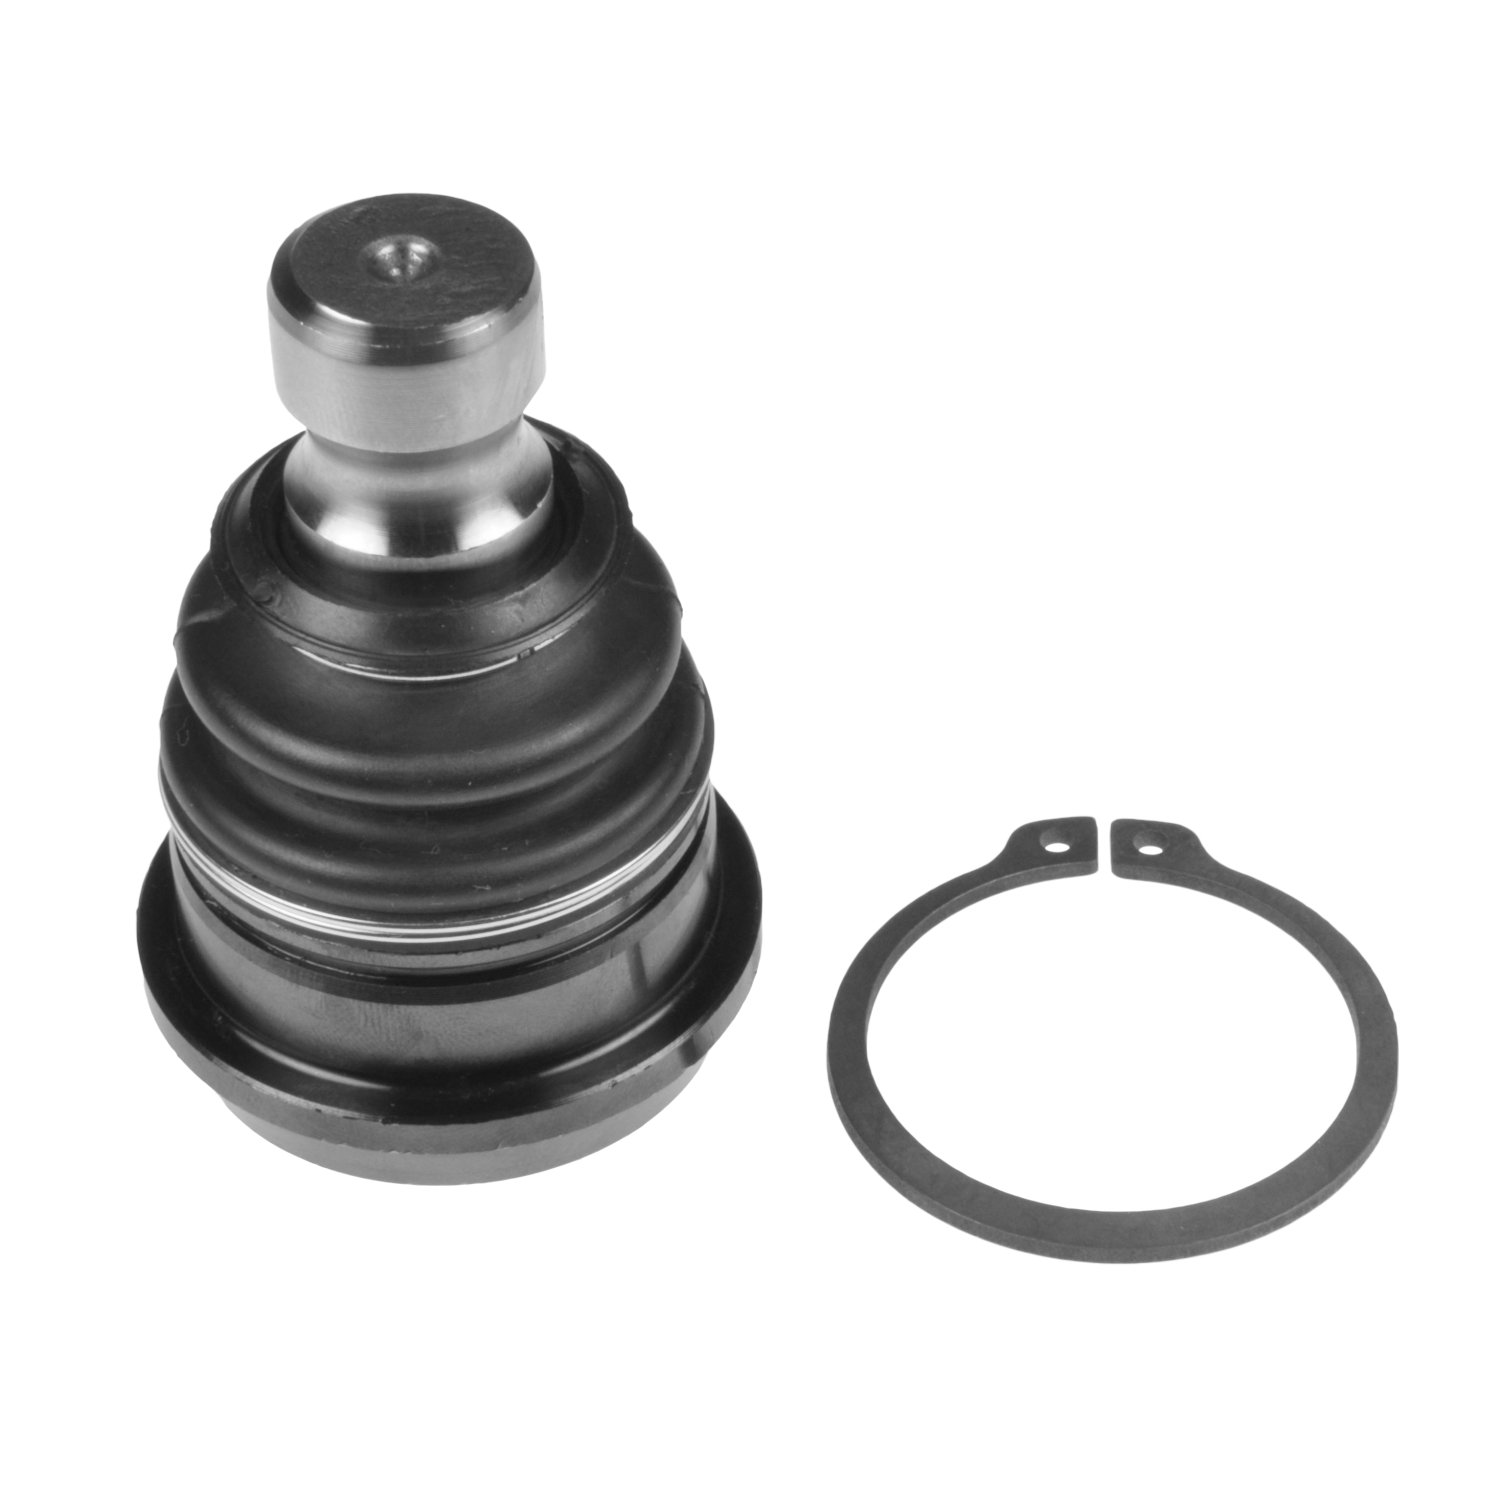 Blue Print ADG08642 ball joint with lock ring  - Pack of 1 Bilstein Group